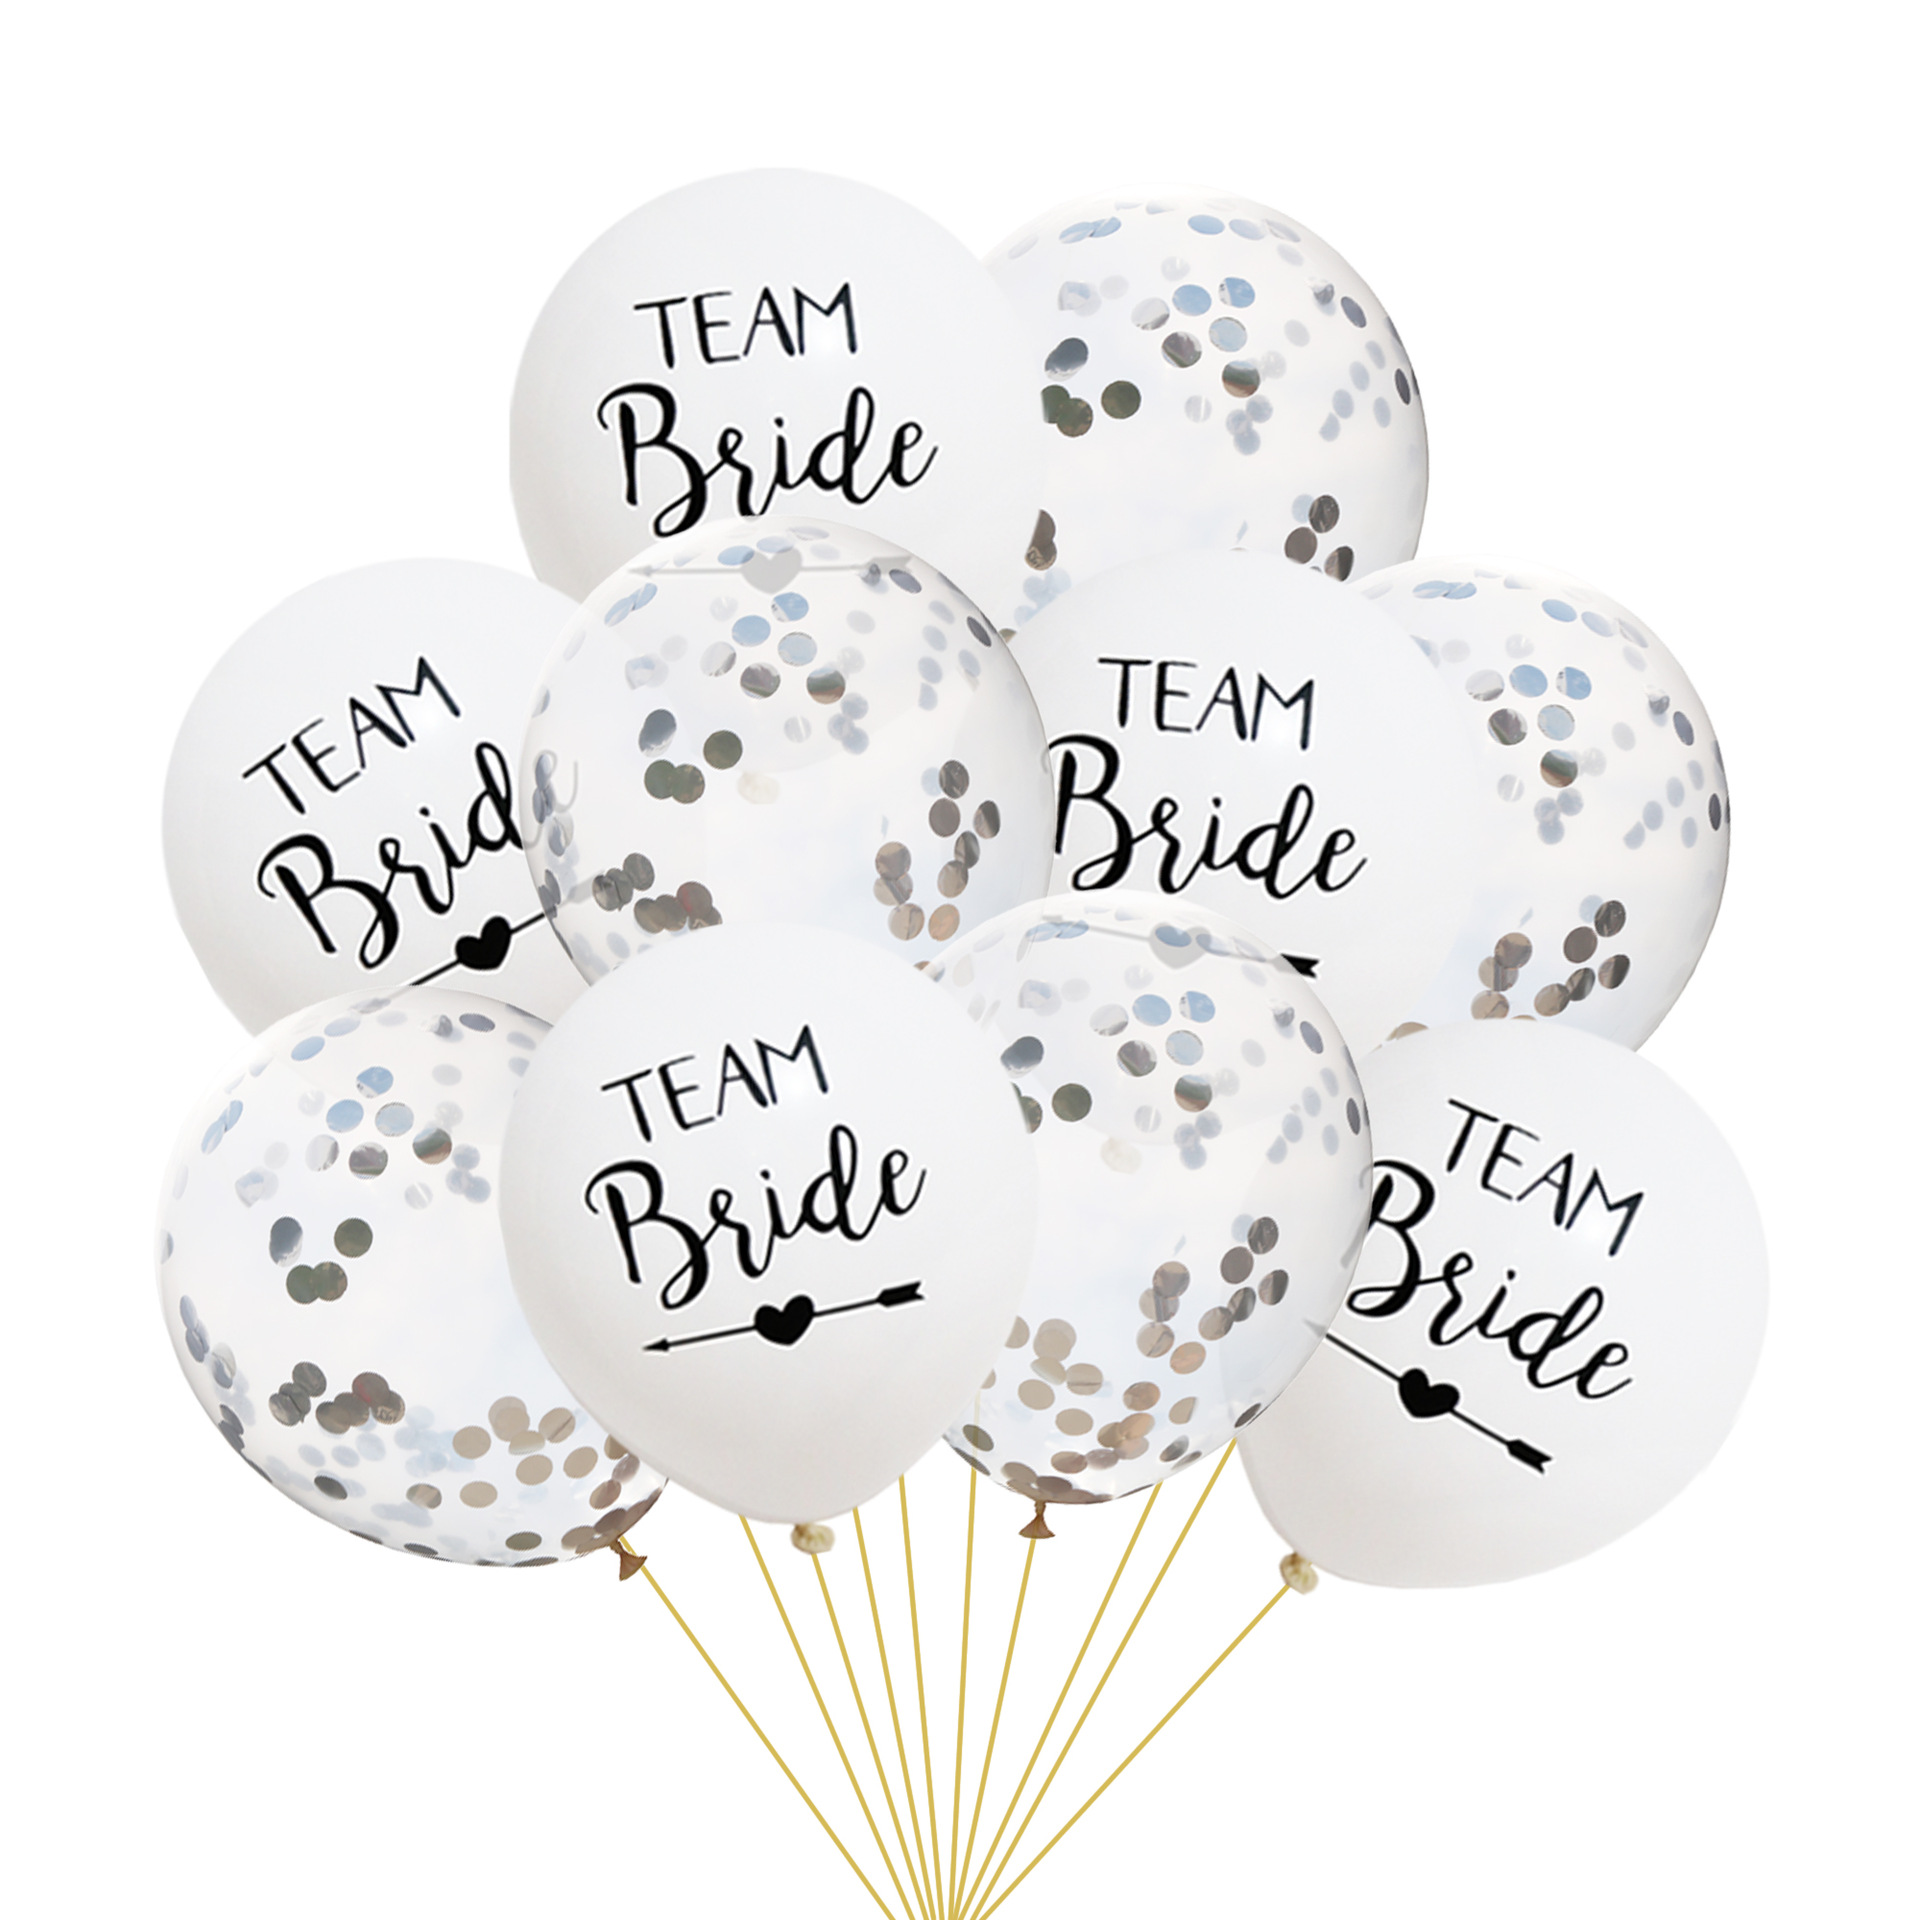 Twins Party Bride Latex Balloons Hen Party Accessories Bridal Shower Bachelorette Party Wedding Team Birde Just Married Balloons in Party DIY Decorations from Home Garden